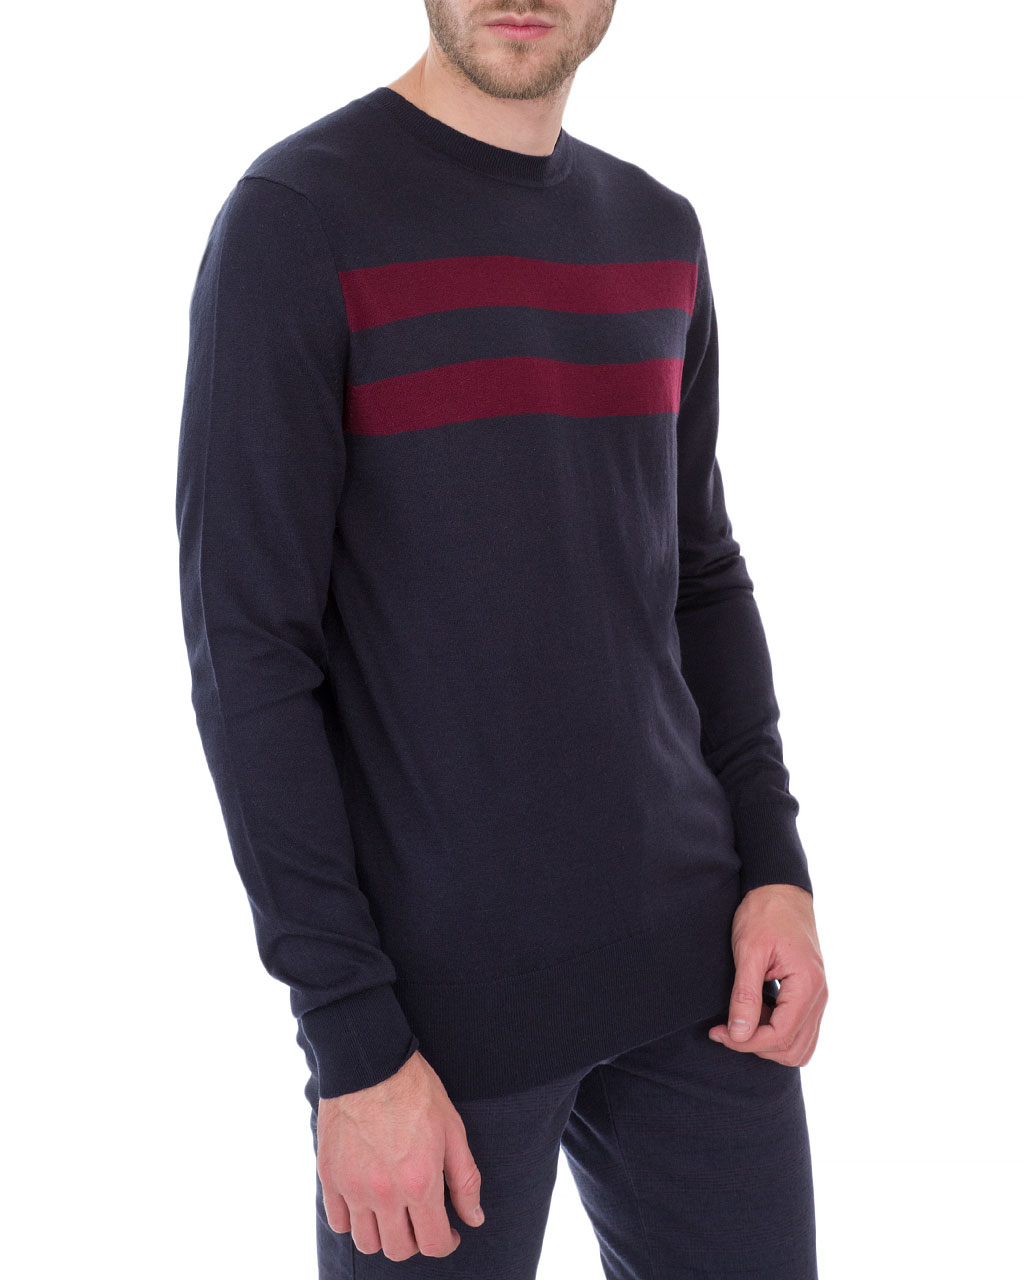 Men's jumper 1860-319/19-20 (3)